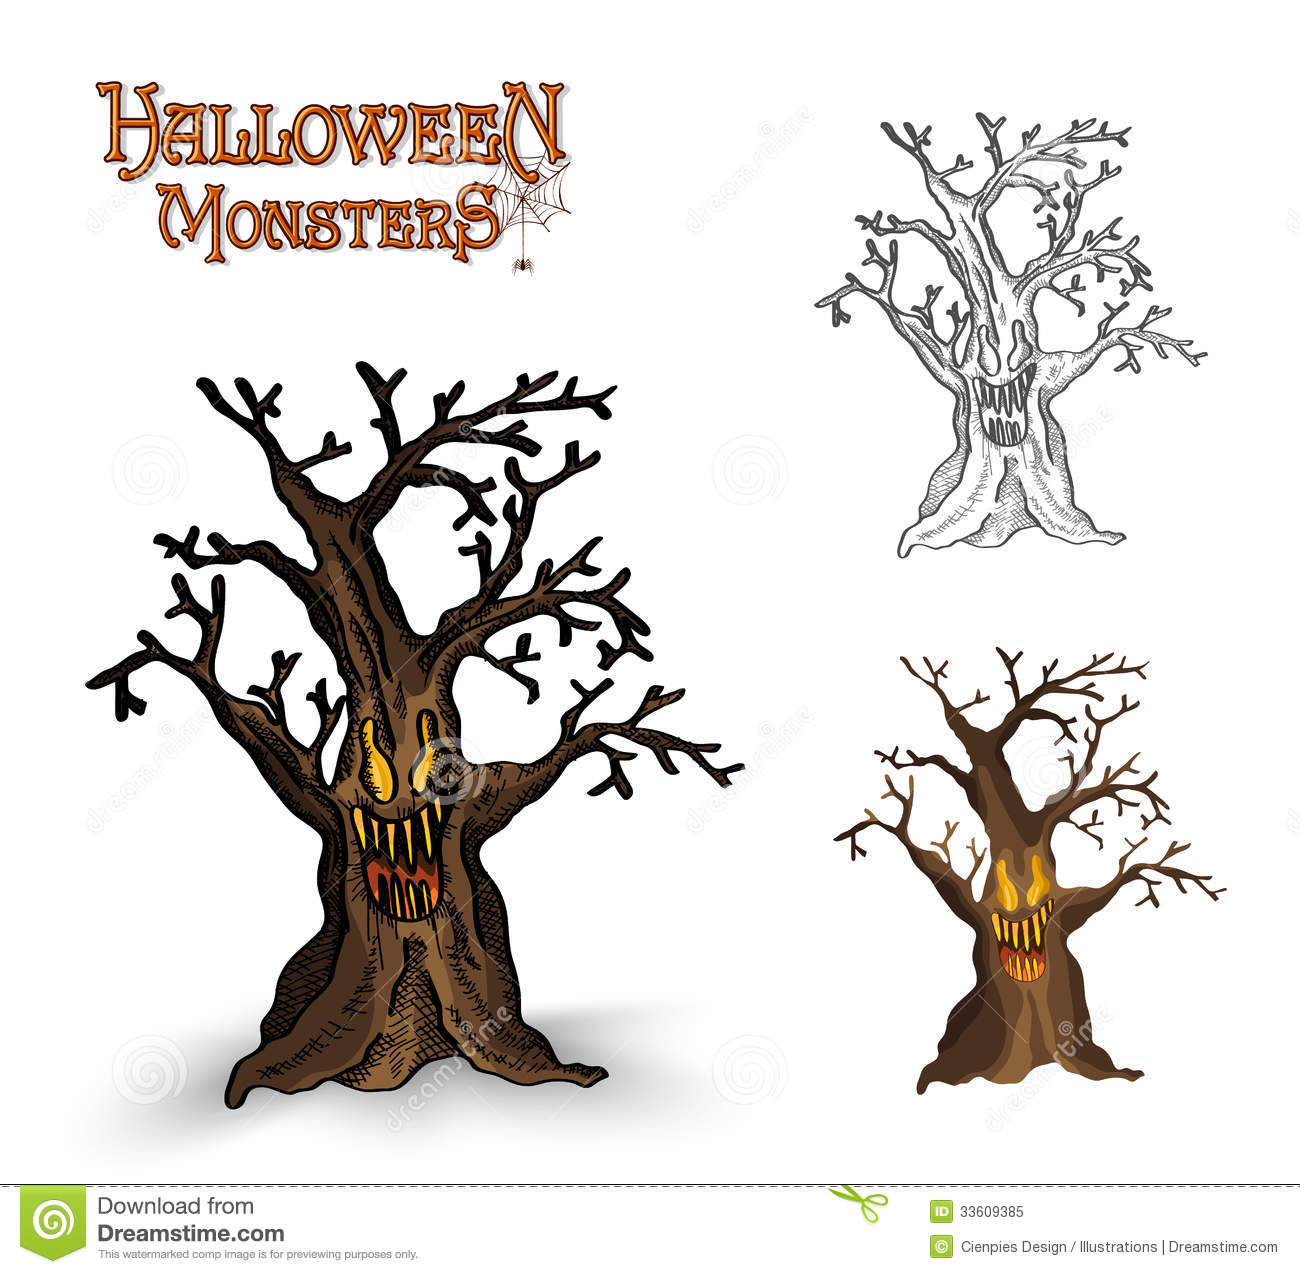 Halloween Monsters Spooky Tree Illustration EPS10 File ...